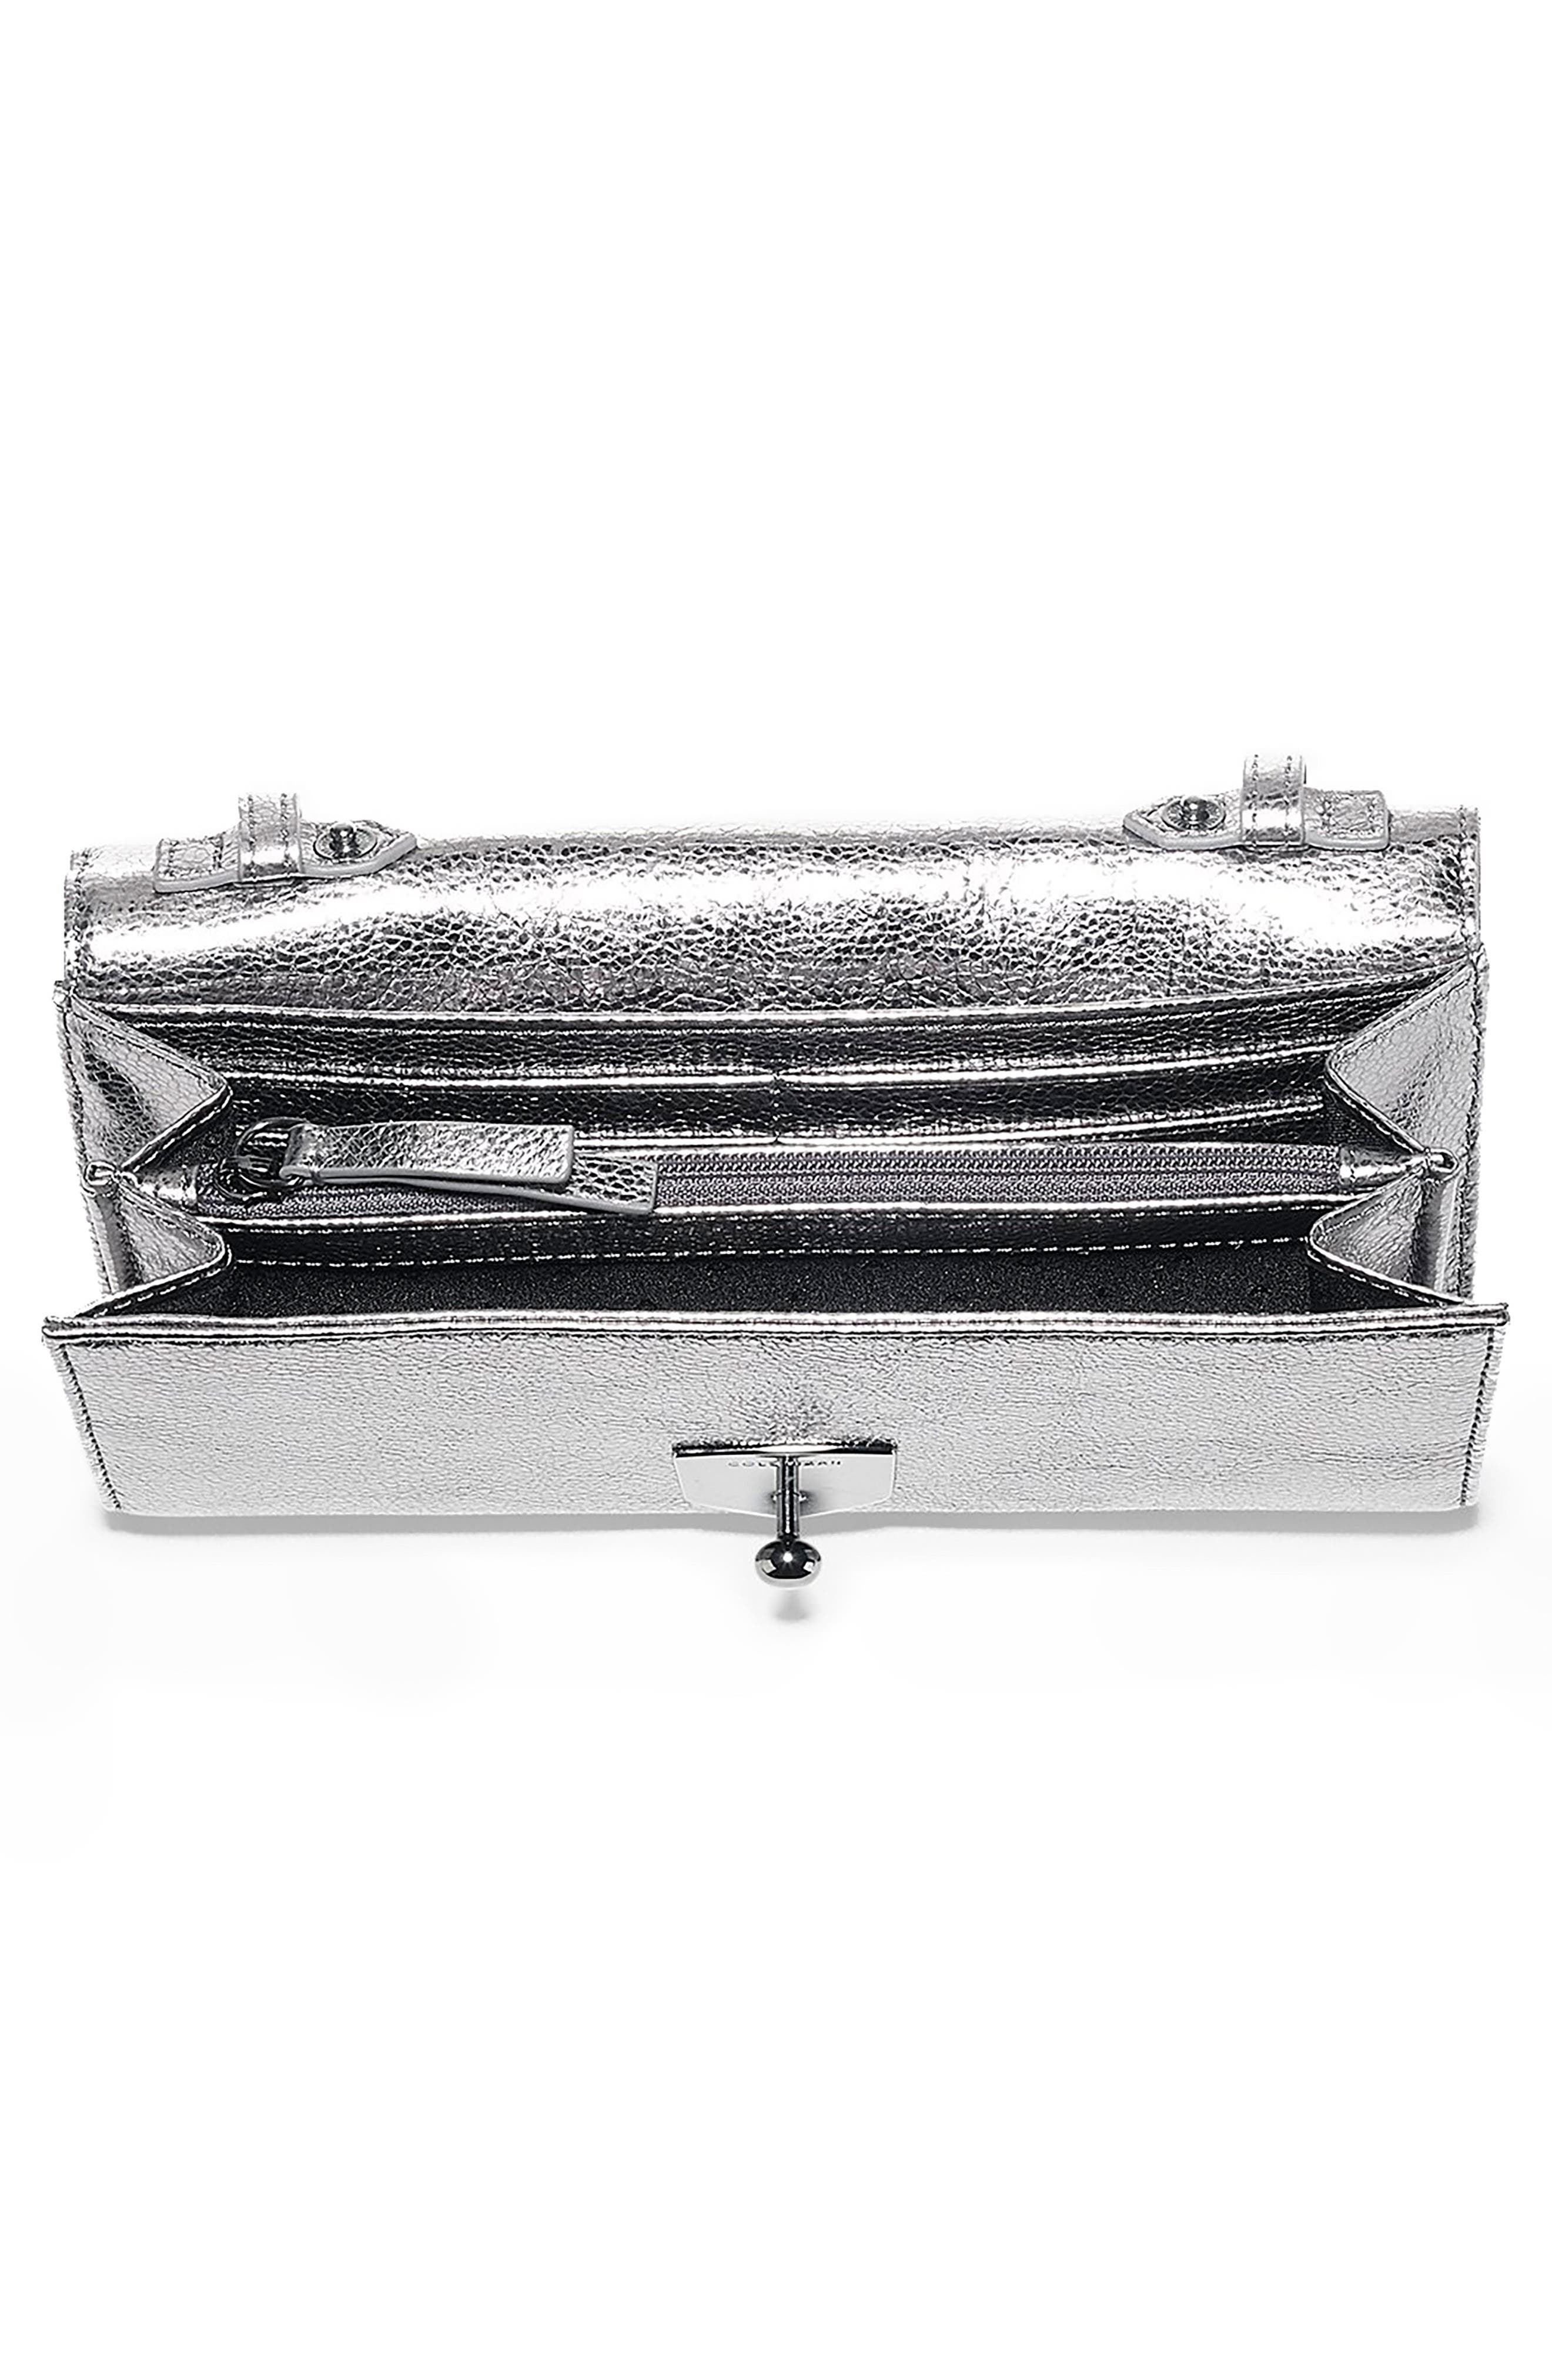 Marli Studded Metallic Leather Convertible Smartphone Clutch,                             Alternate thumbnail 3, color,                             020